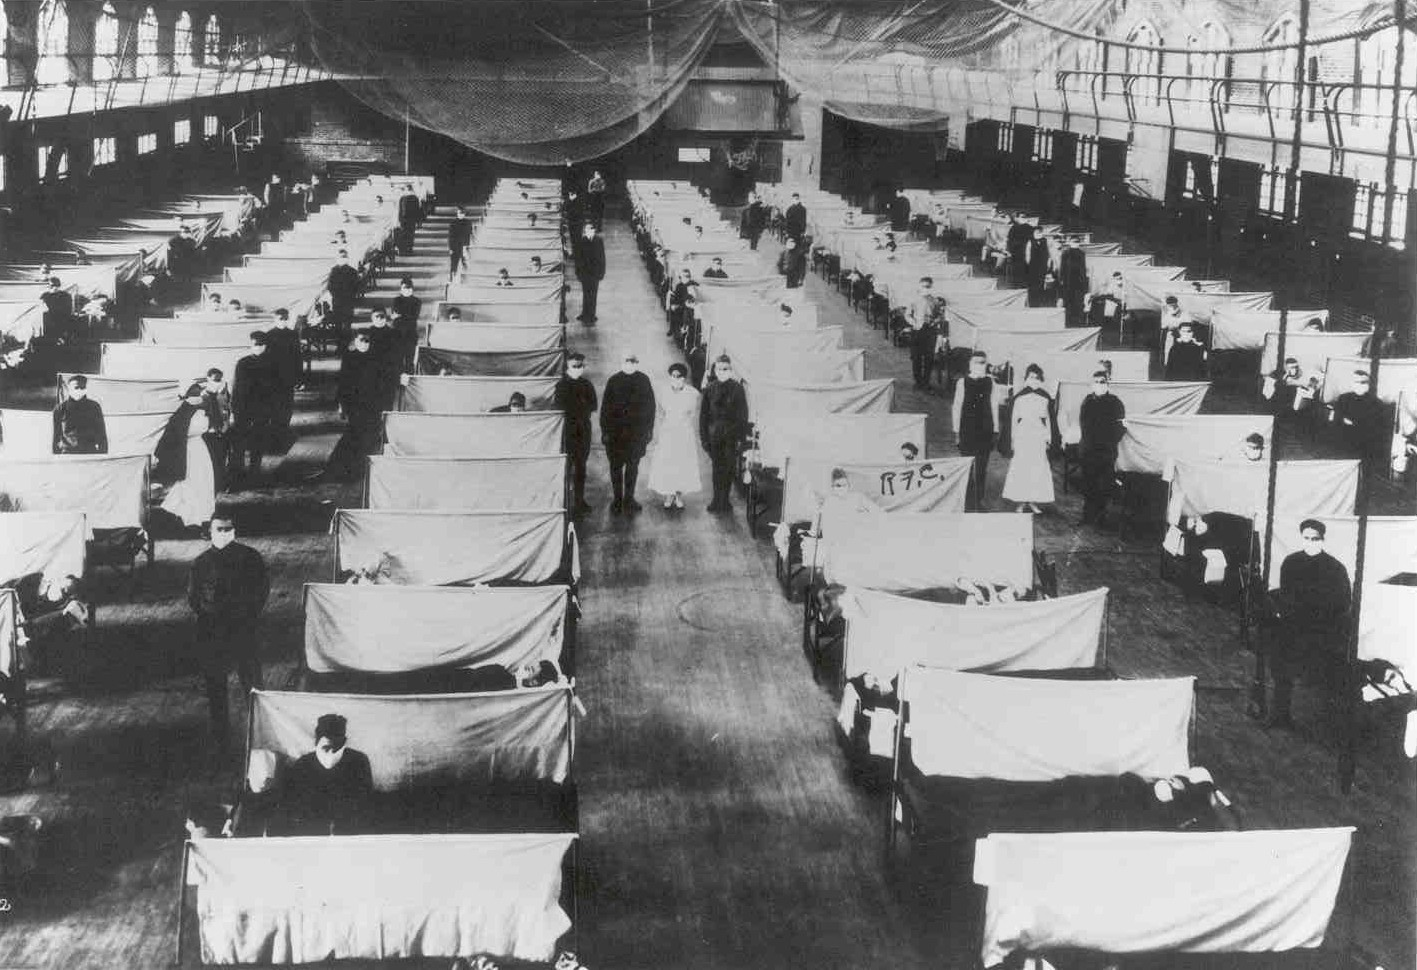 Influenza: How the Great War helped create the greatest pandemic ever known